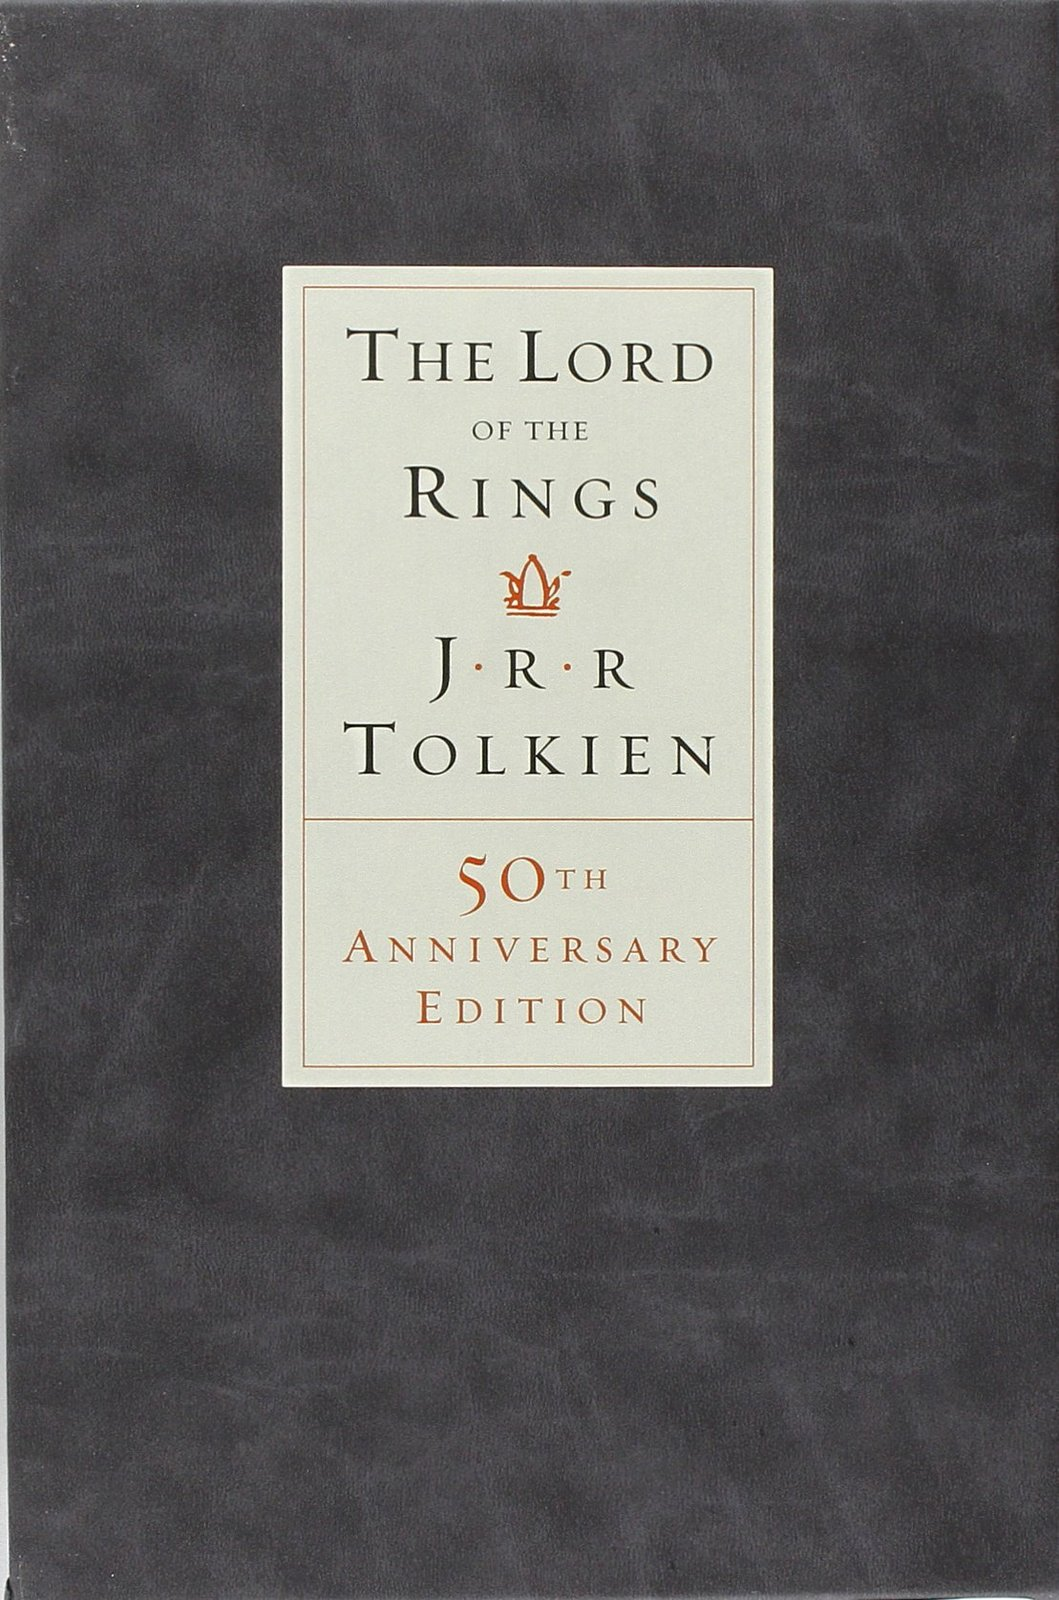 The Lord of the Rings (50th Anniversary Edition) by J.R.R. Tolkien image